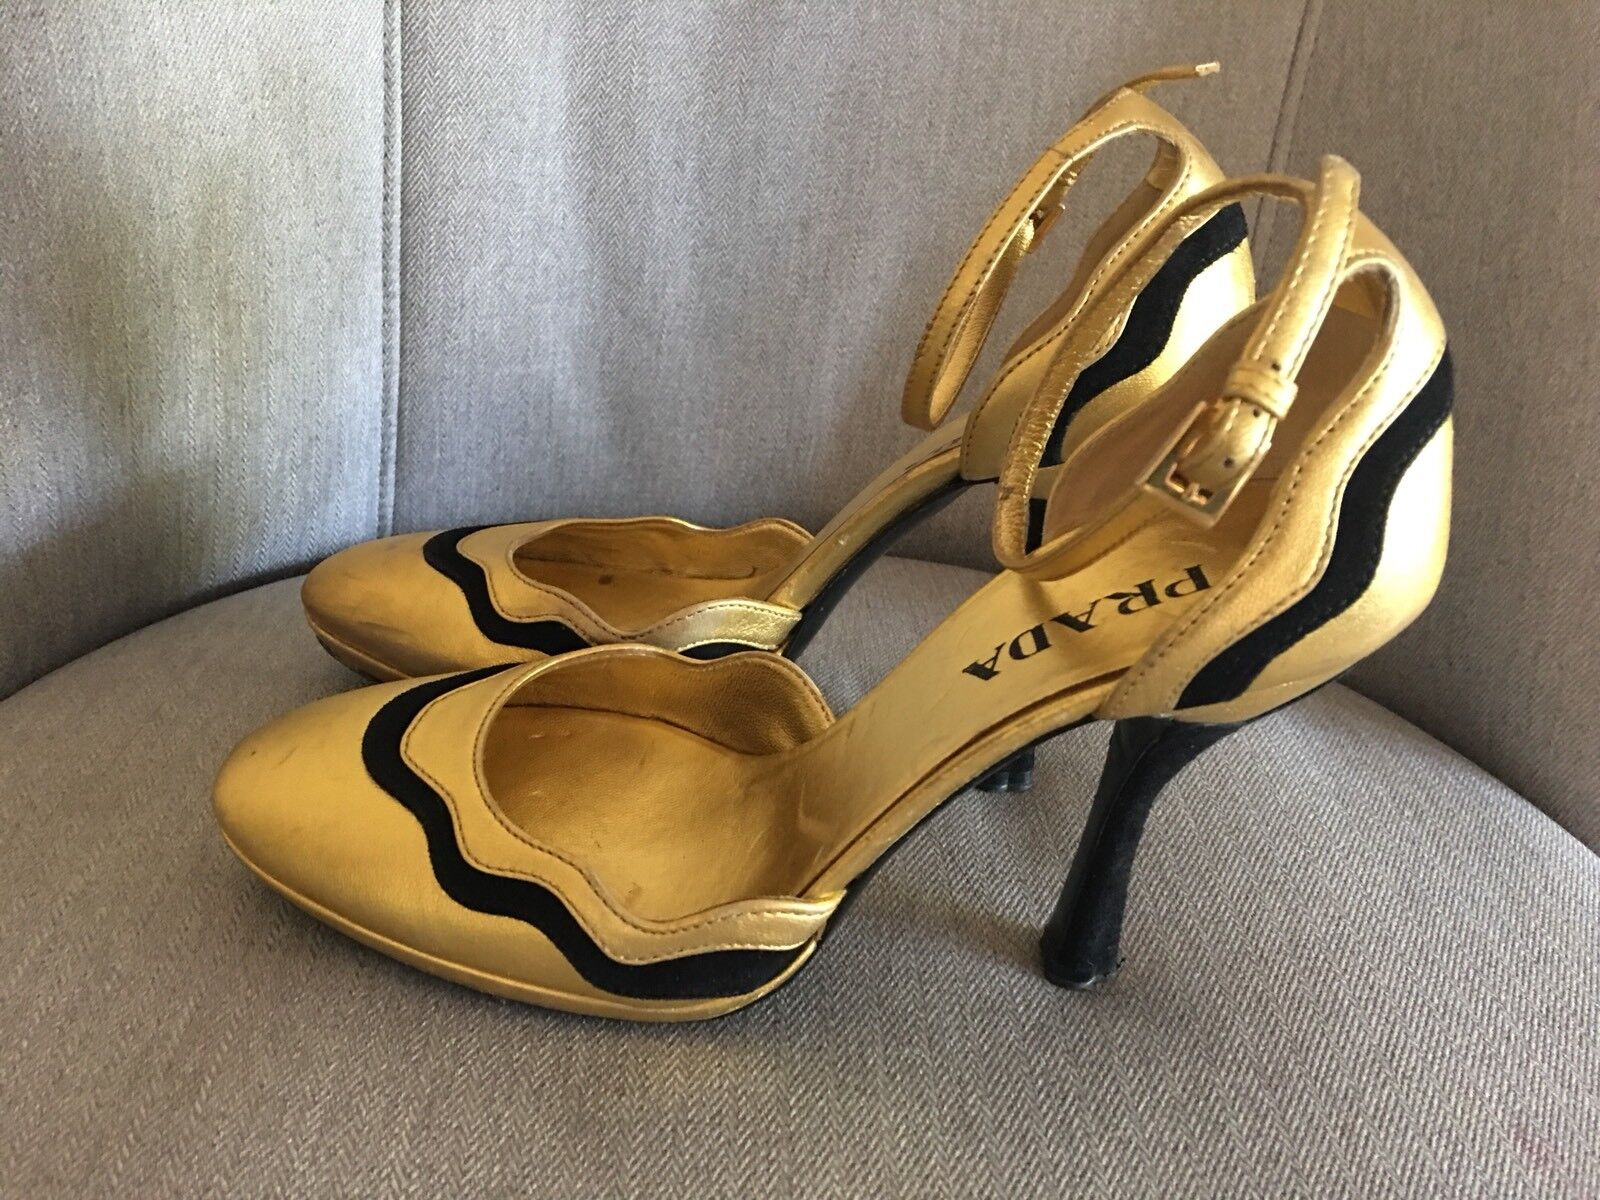 Prada gold Leder high 5.5 heels Ankle Strap Schuhe 5.5 high M d70c12